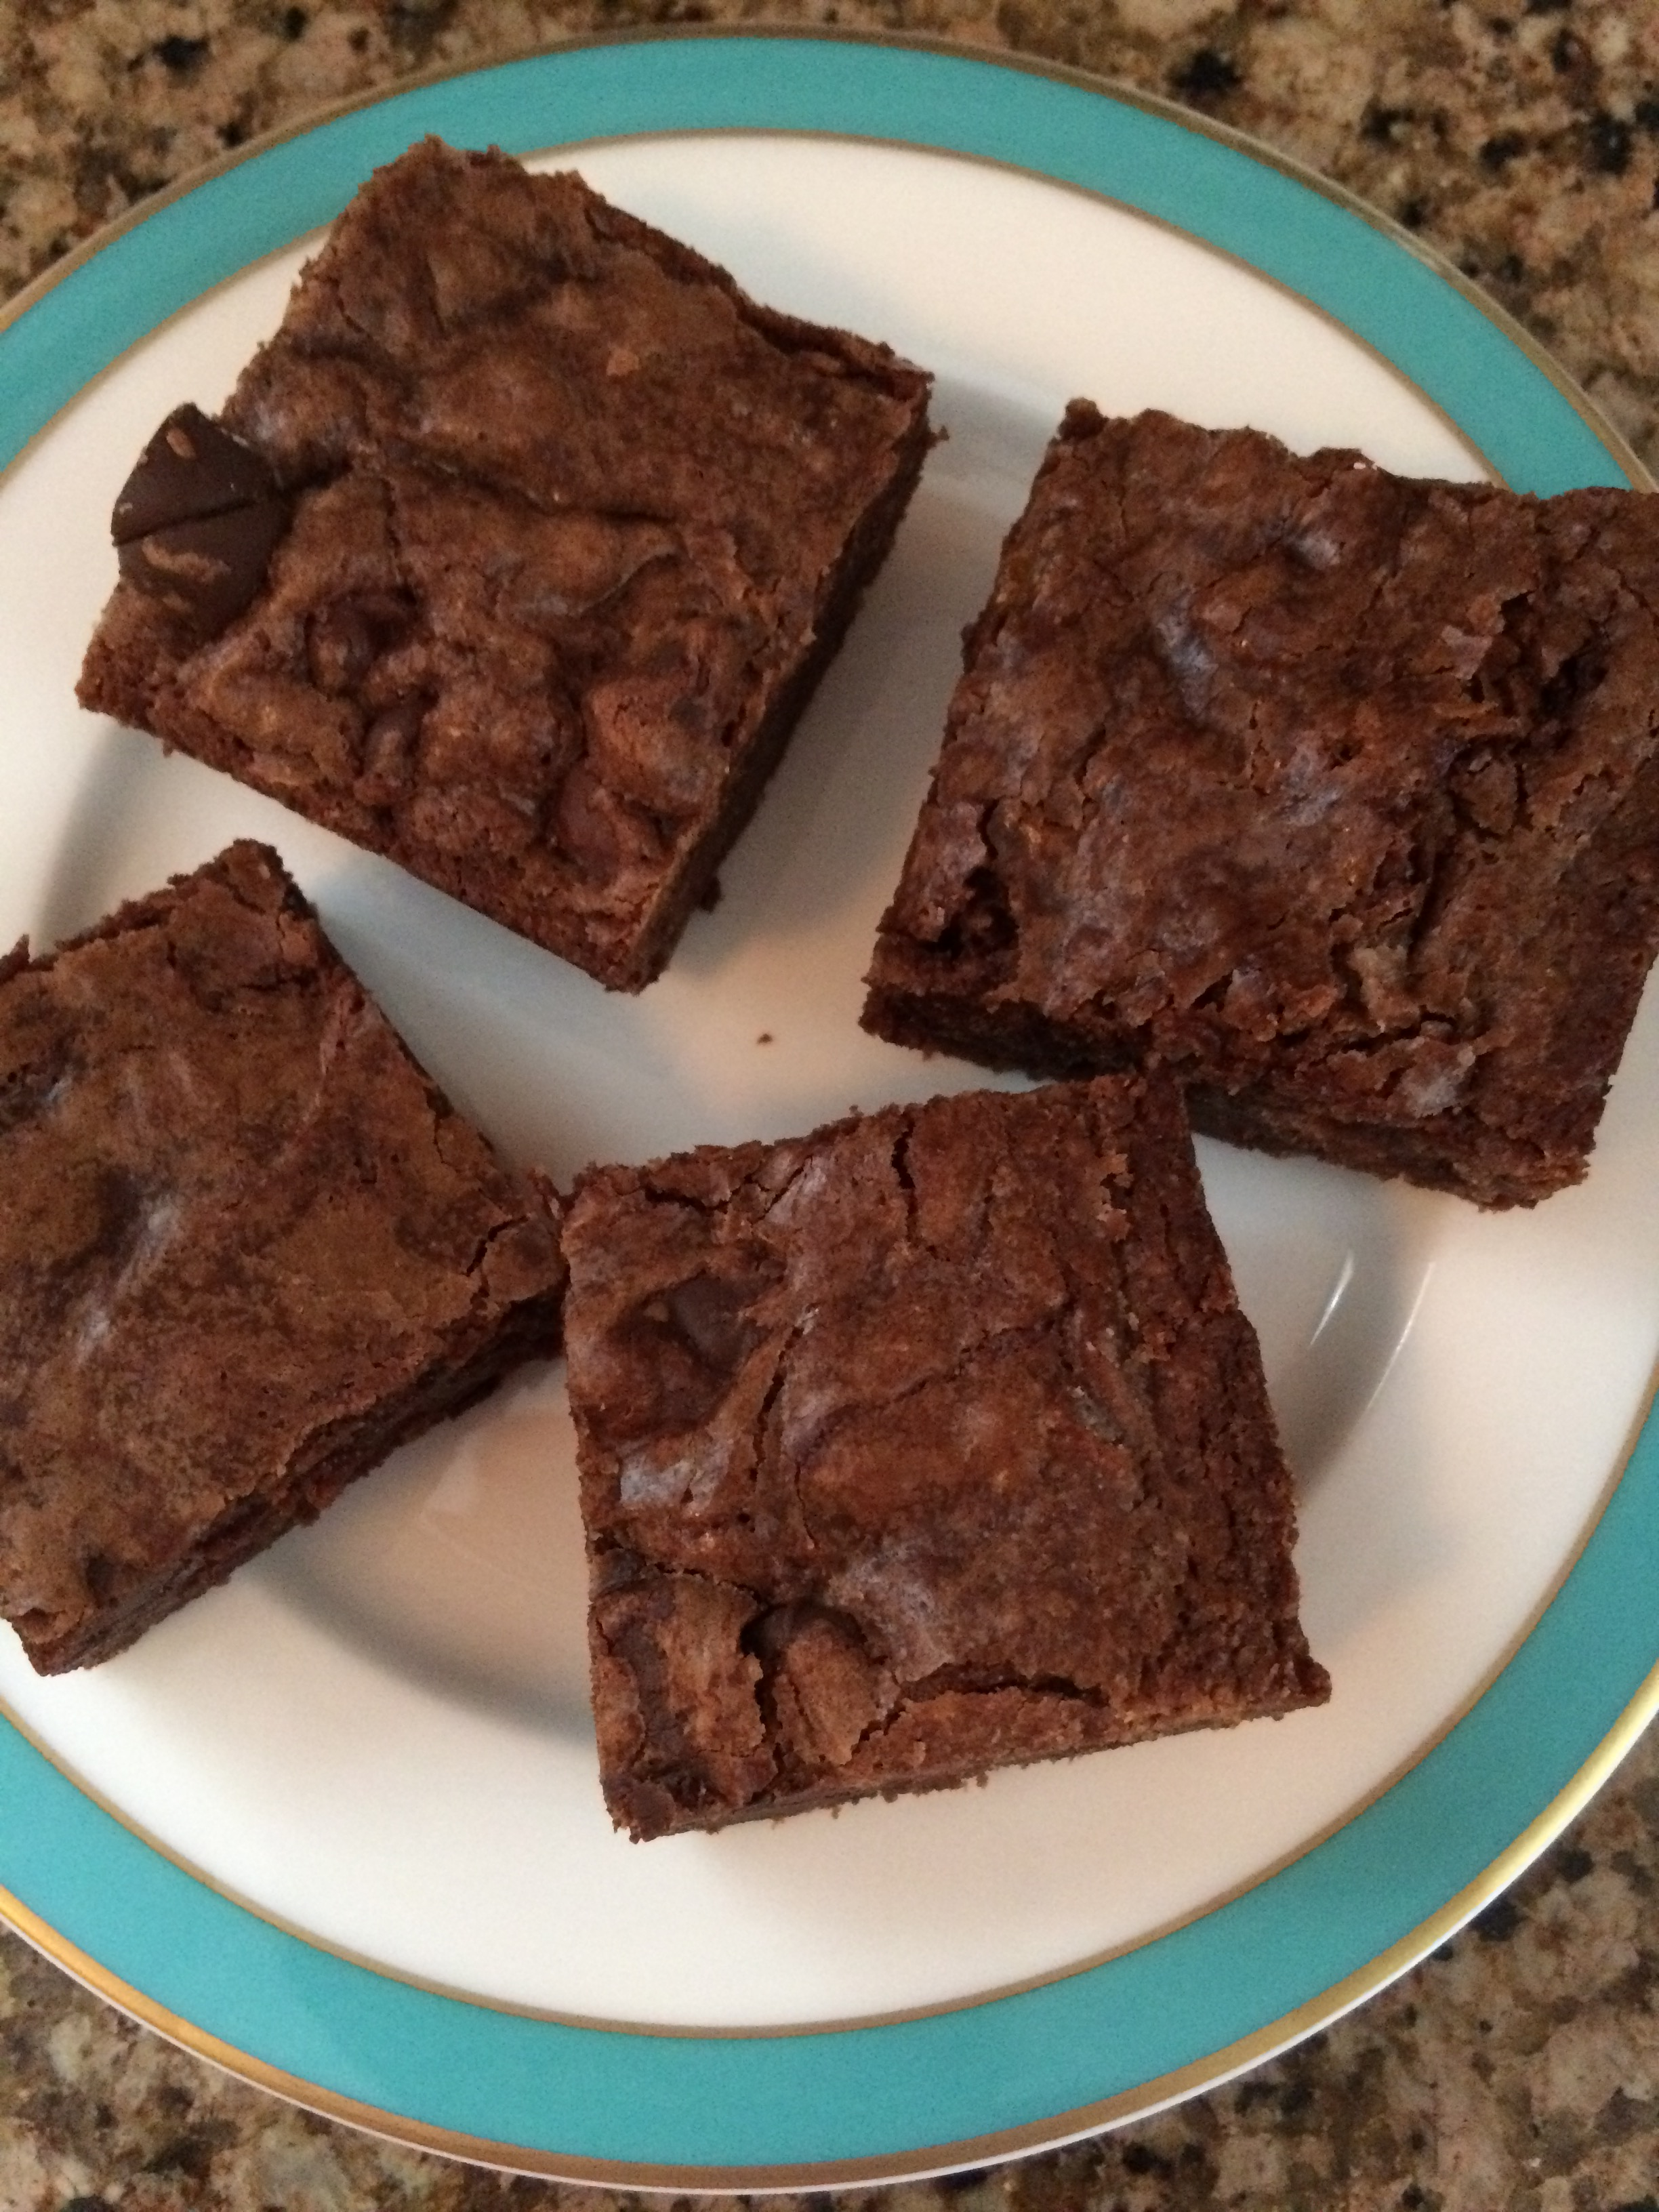 Nutella Topped Brownies One Bowl Nutella Fudge Brownies Curiouser Curiouser